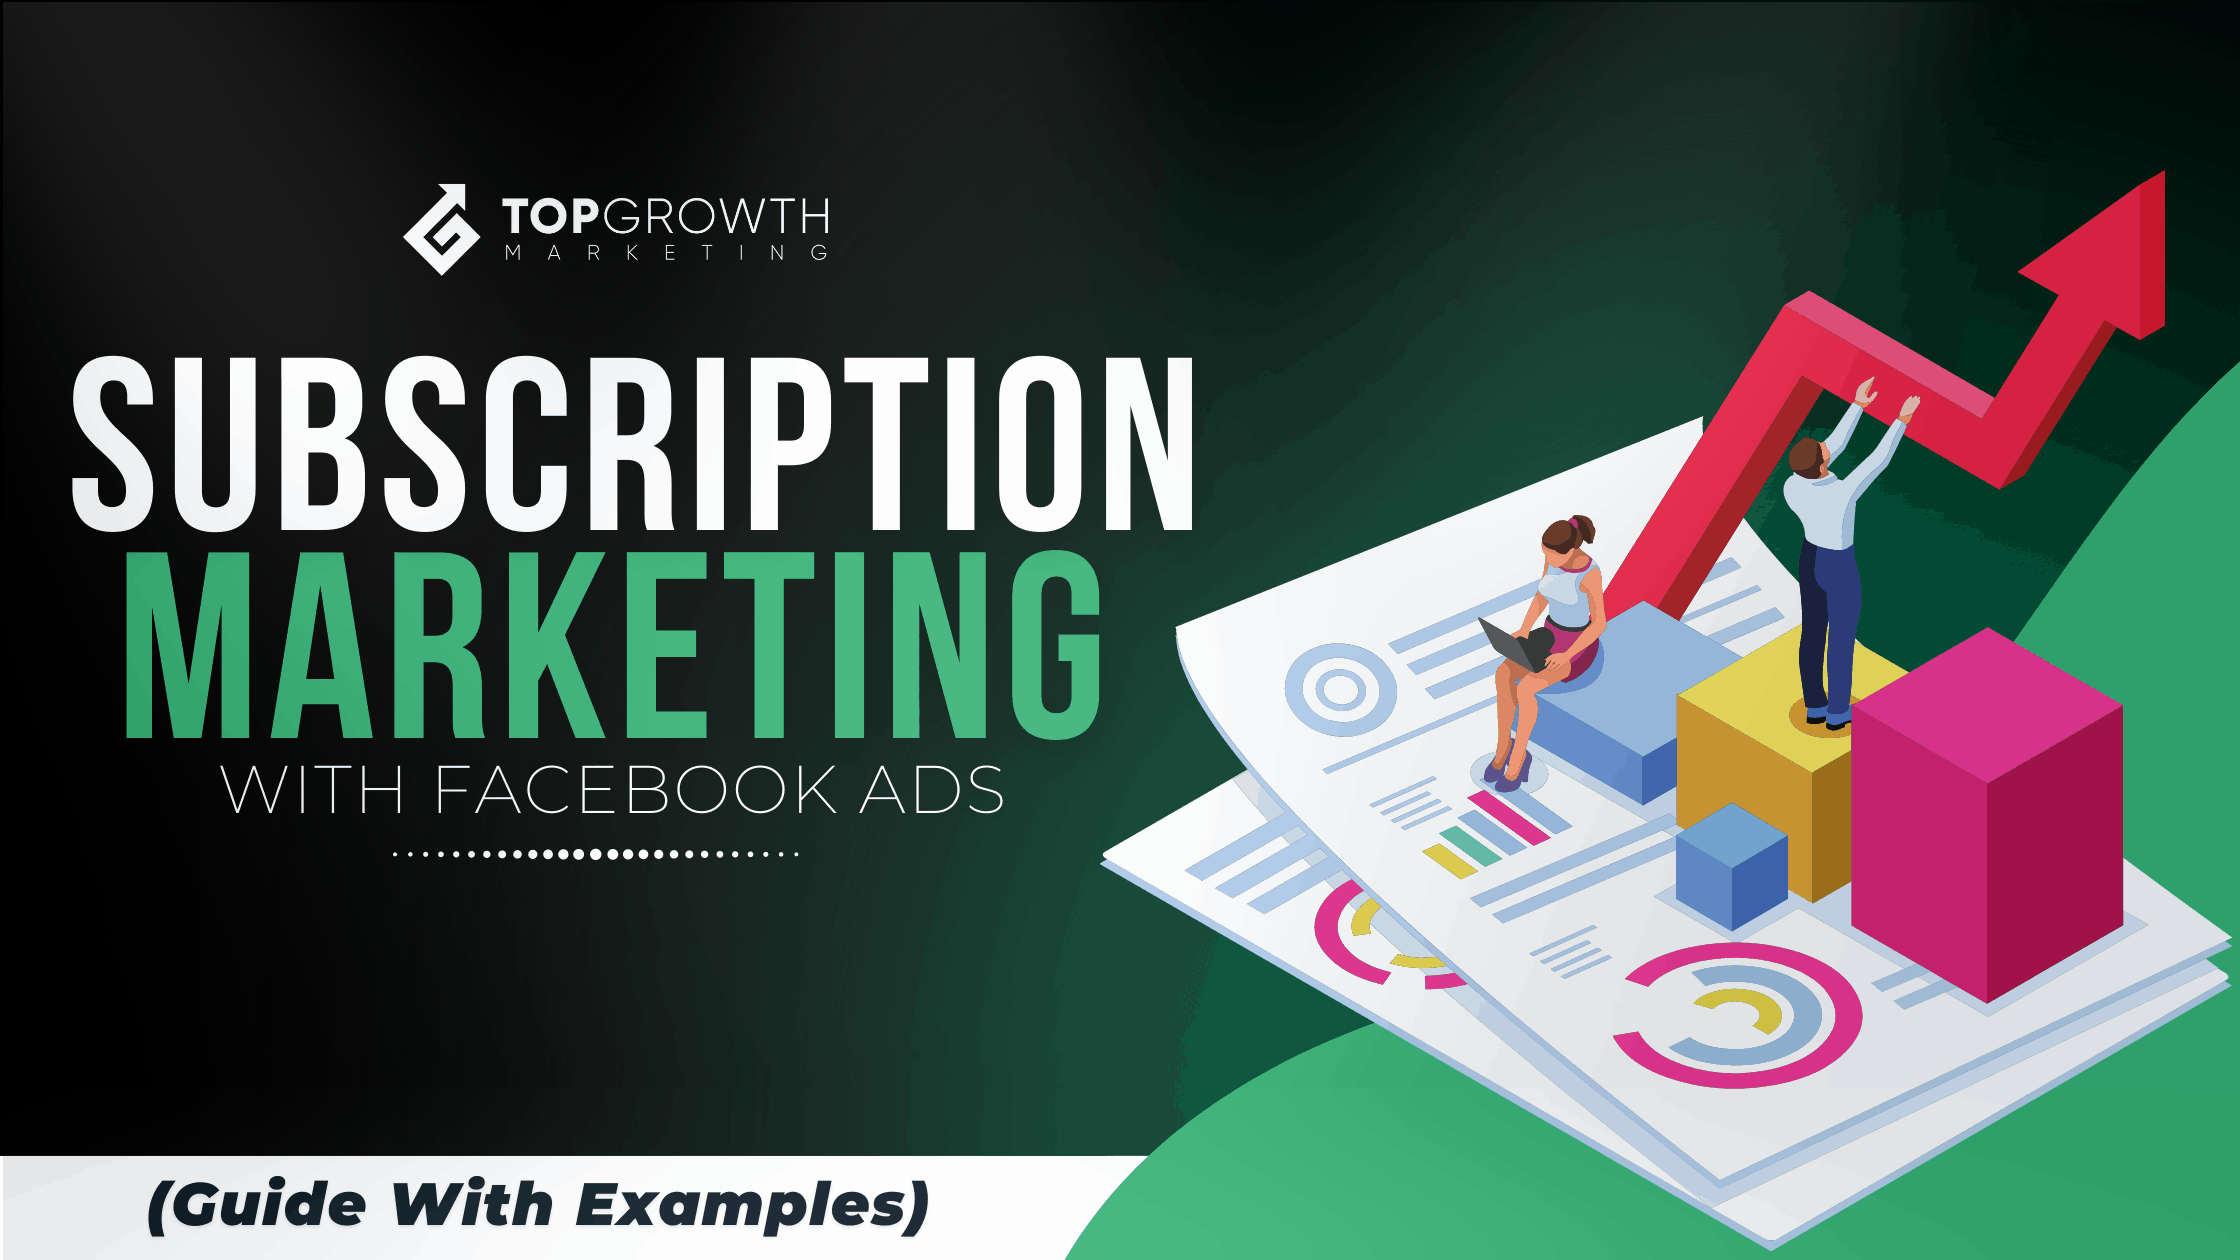 Subscription marketing with Facebook ads